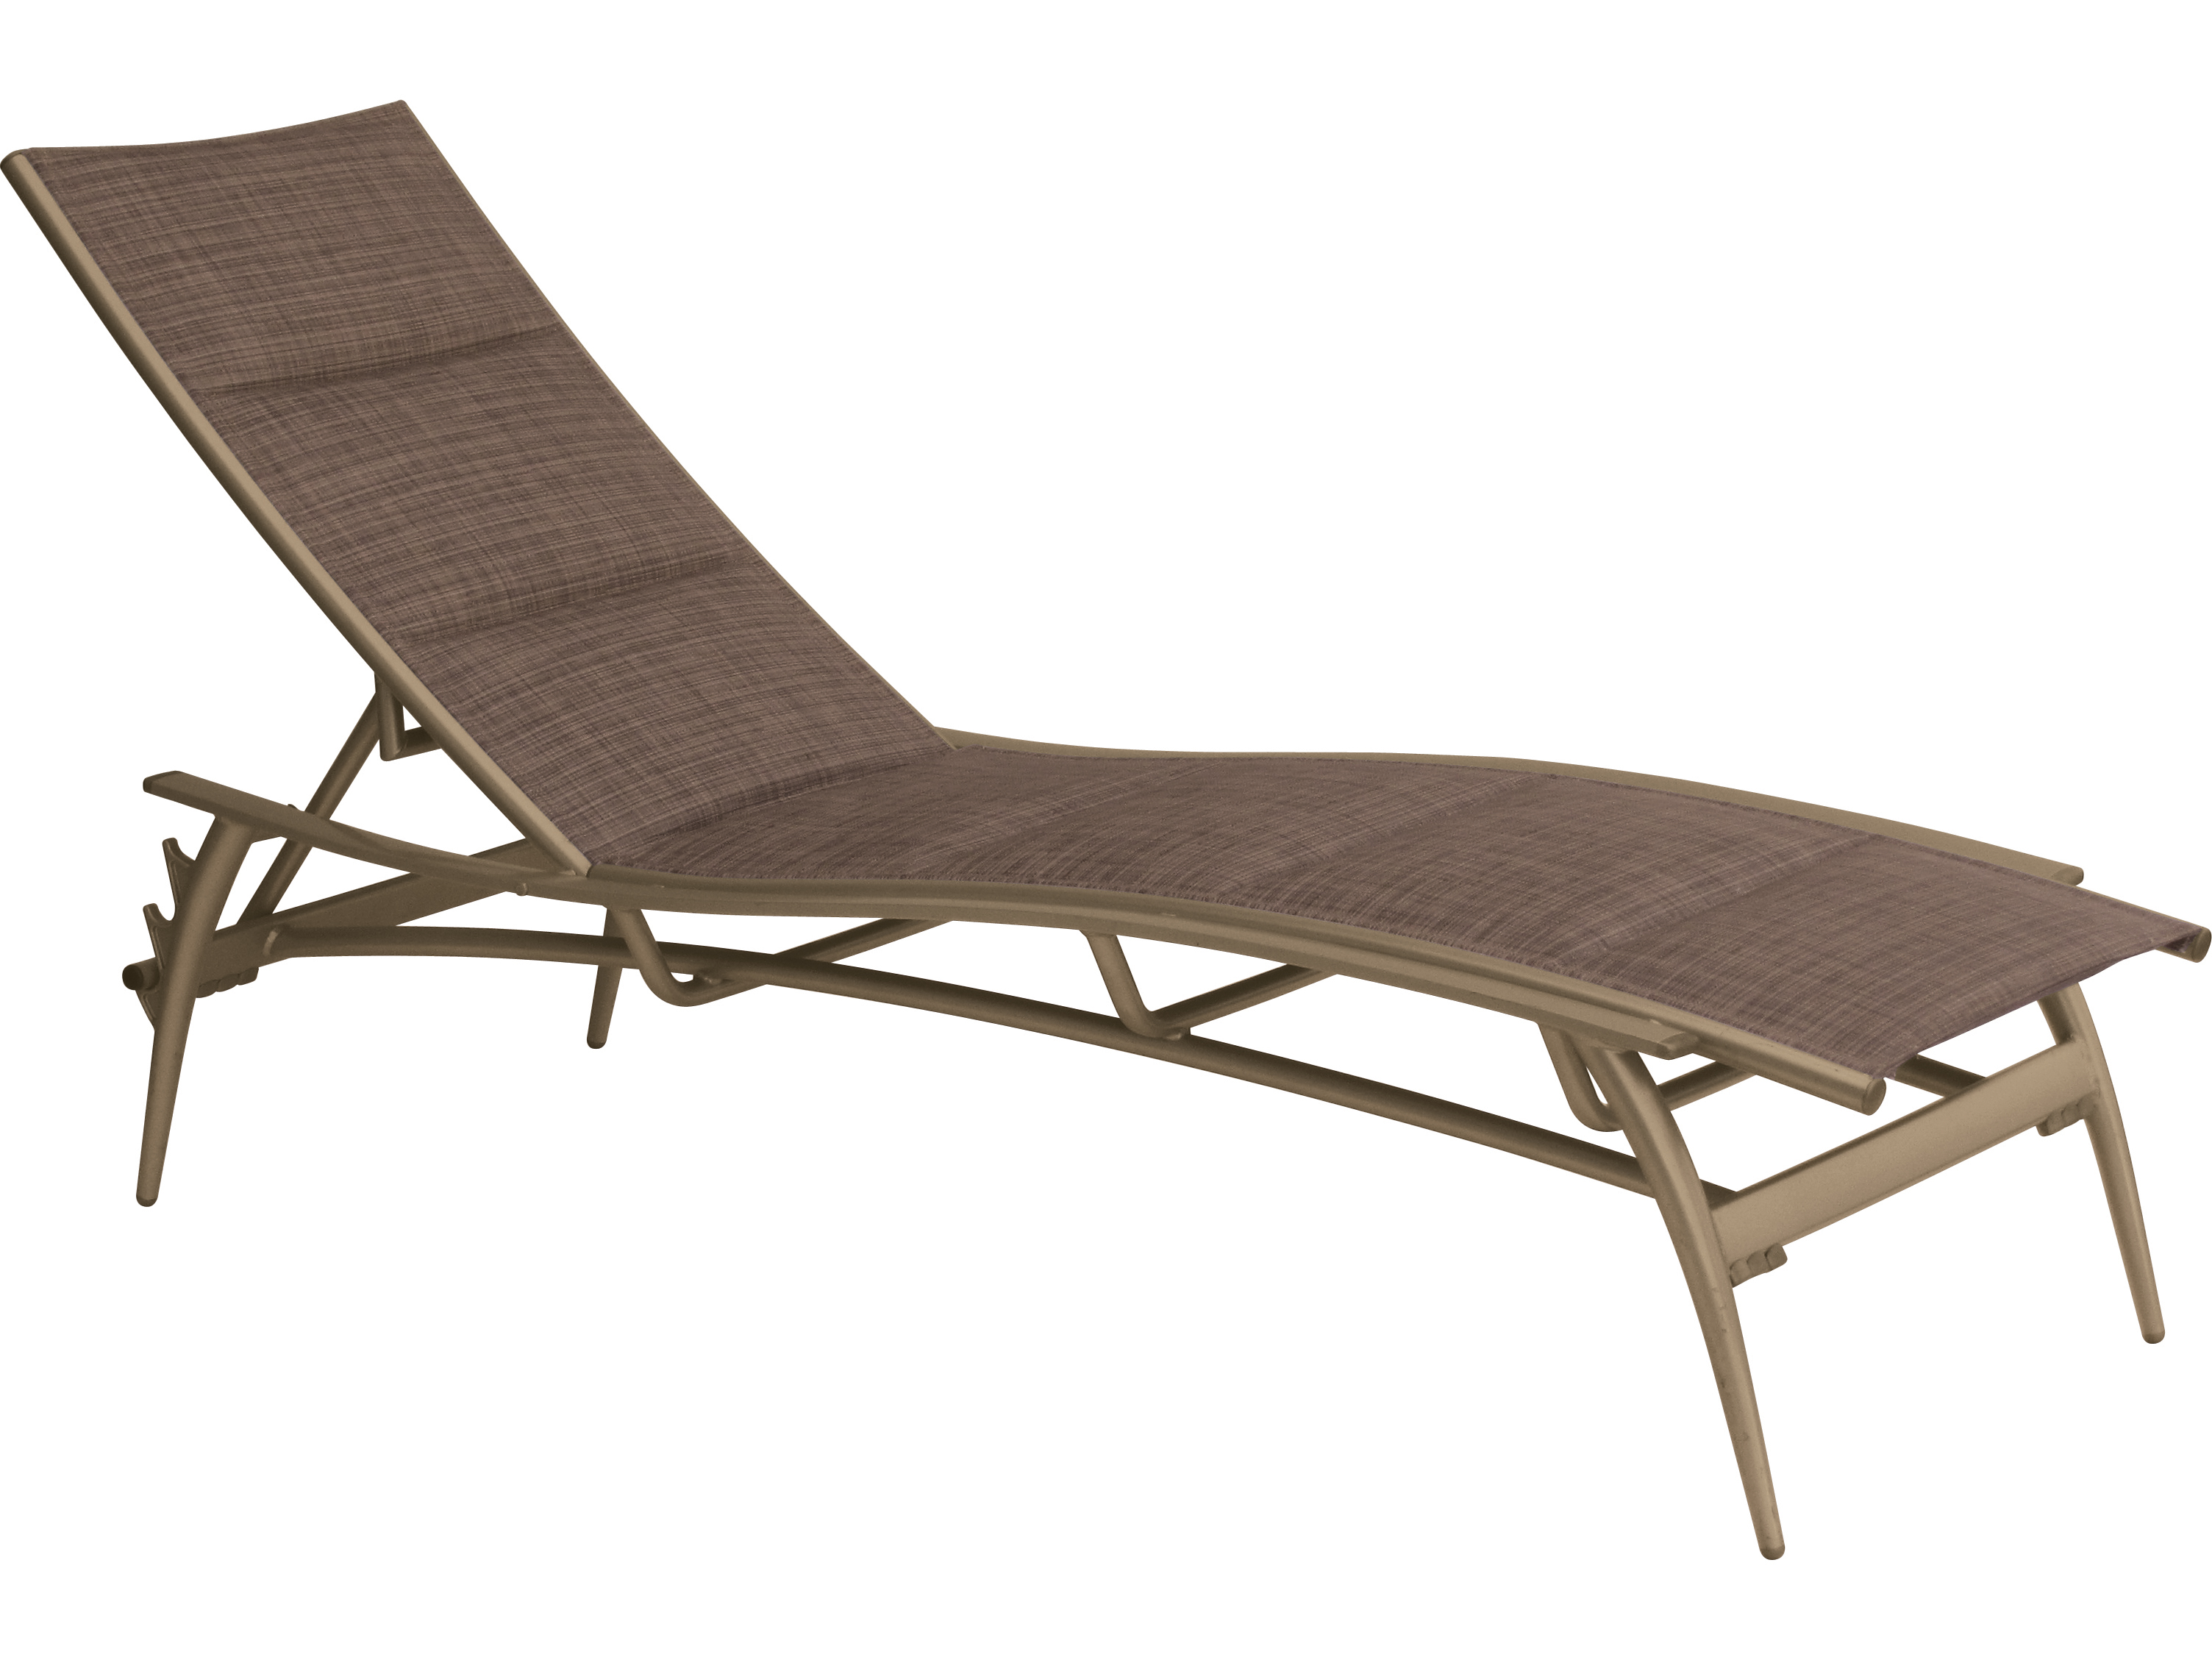 Tropitone echo padded sling aluminum chaise lounge 189932ps for Aluminum chaise lounges